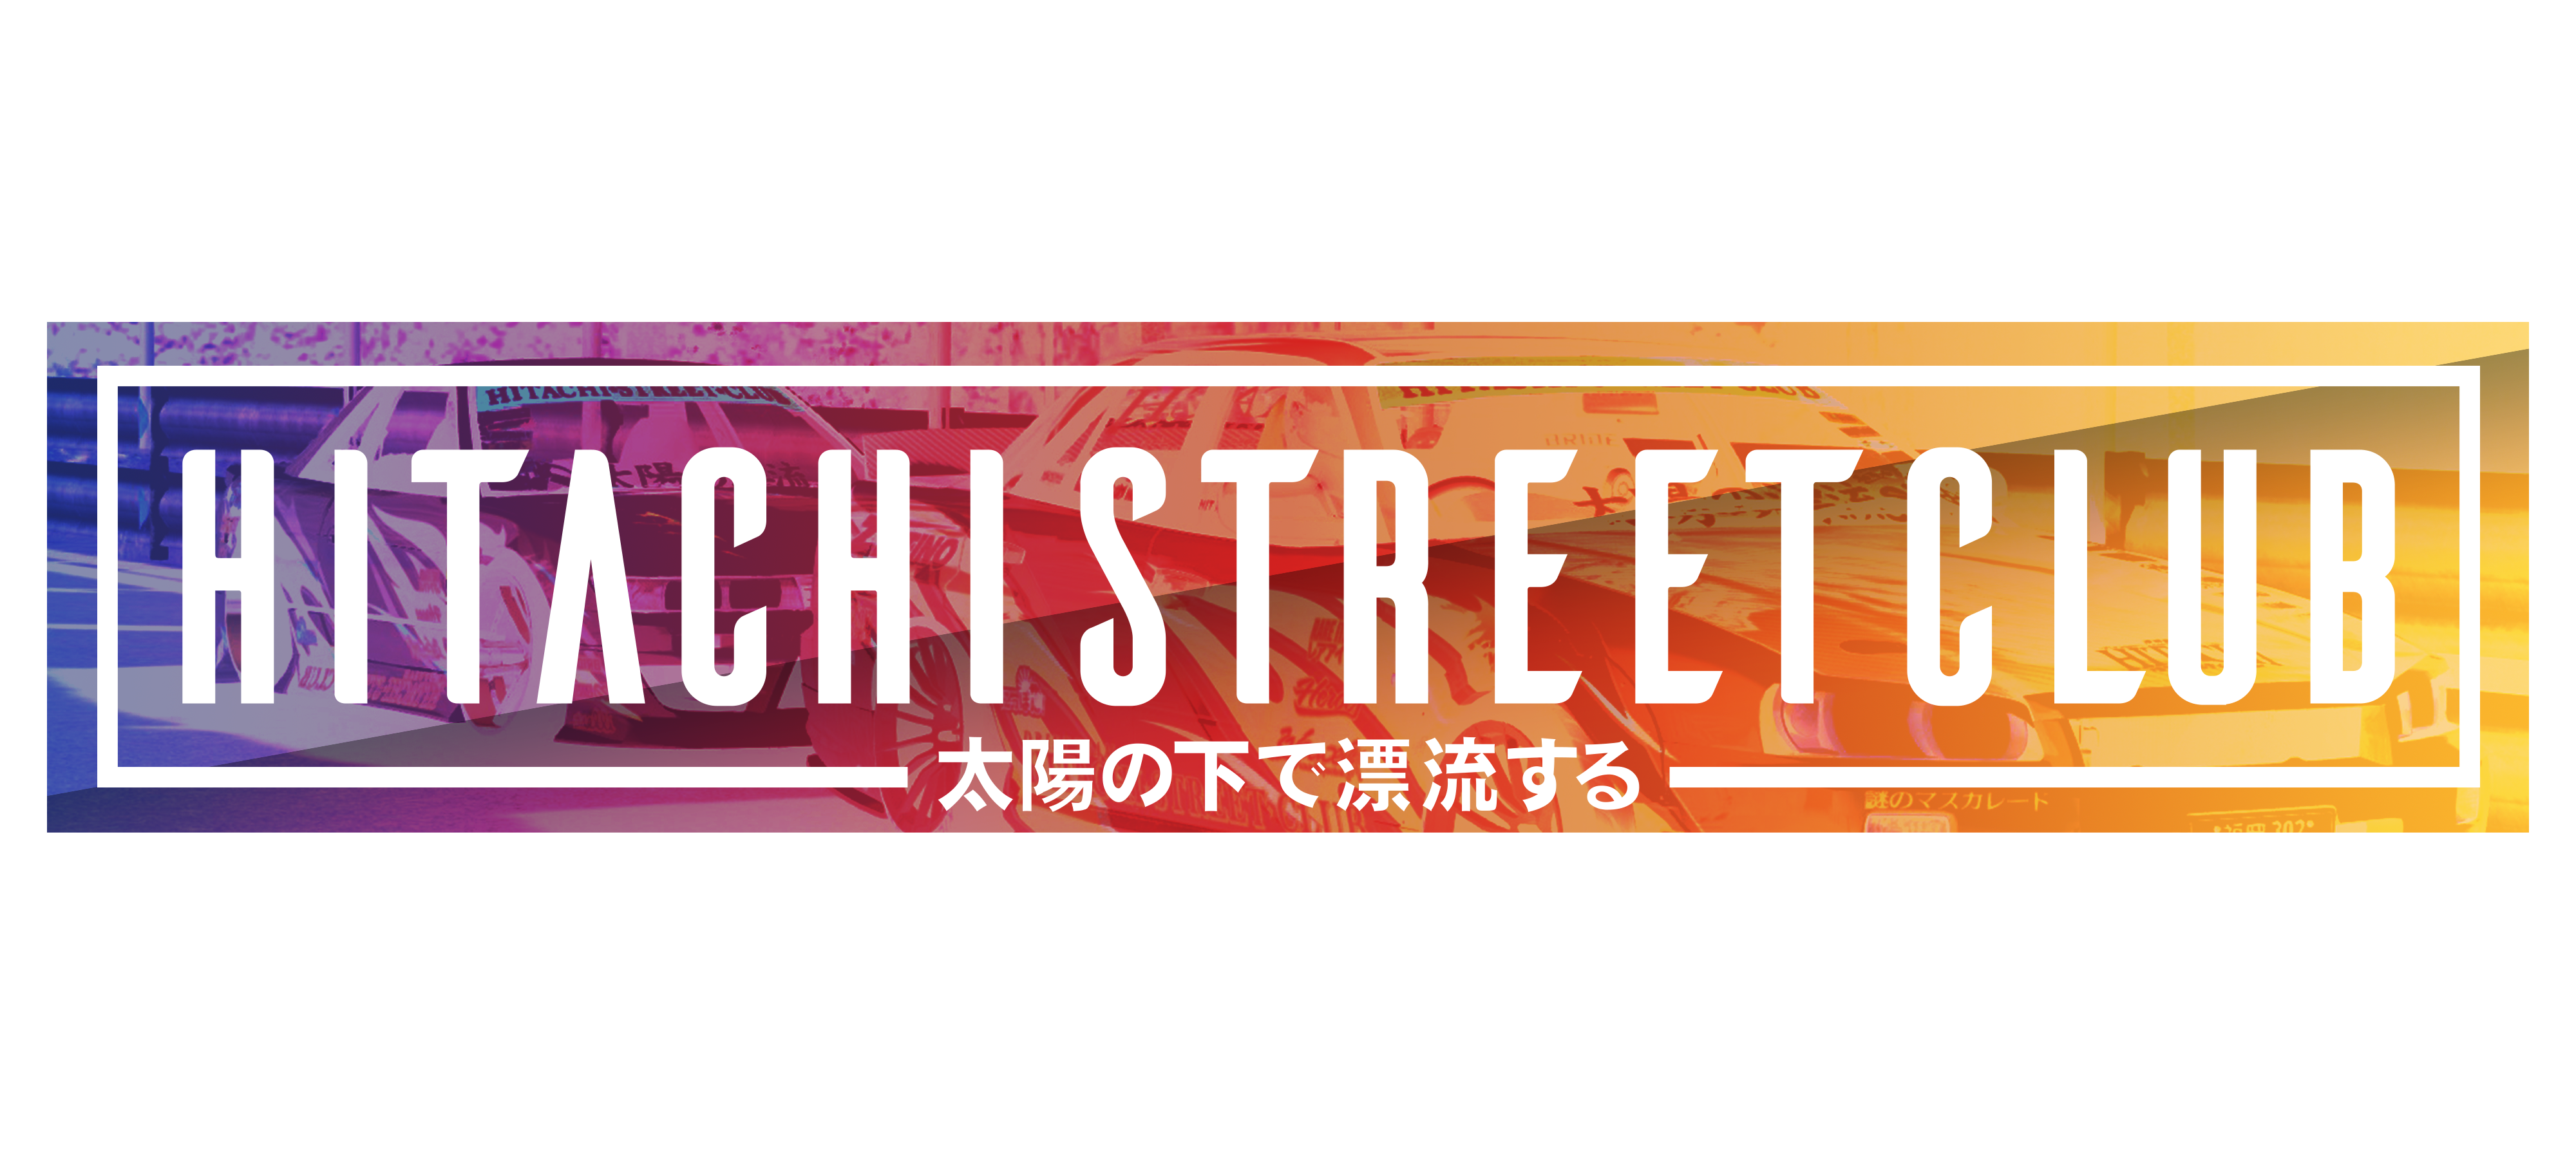 Hitachi Street Club